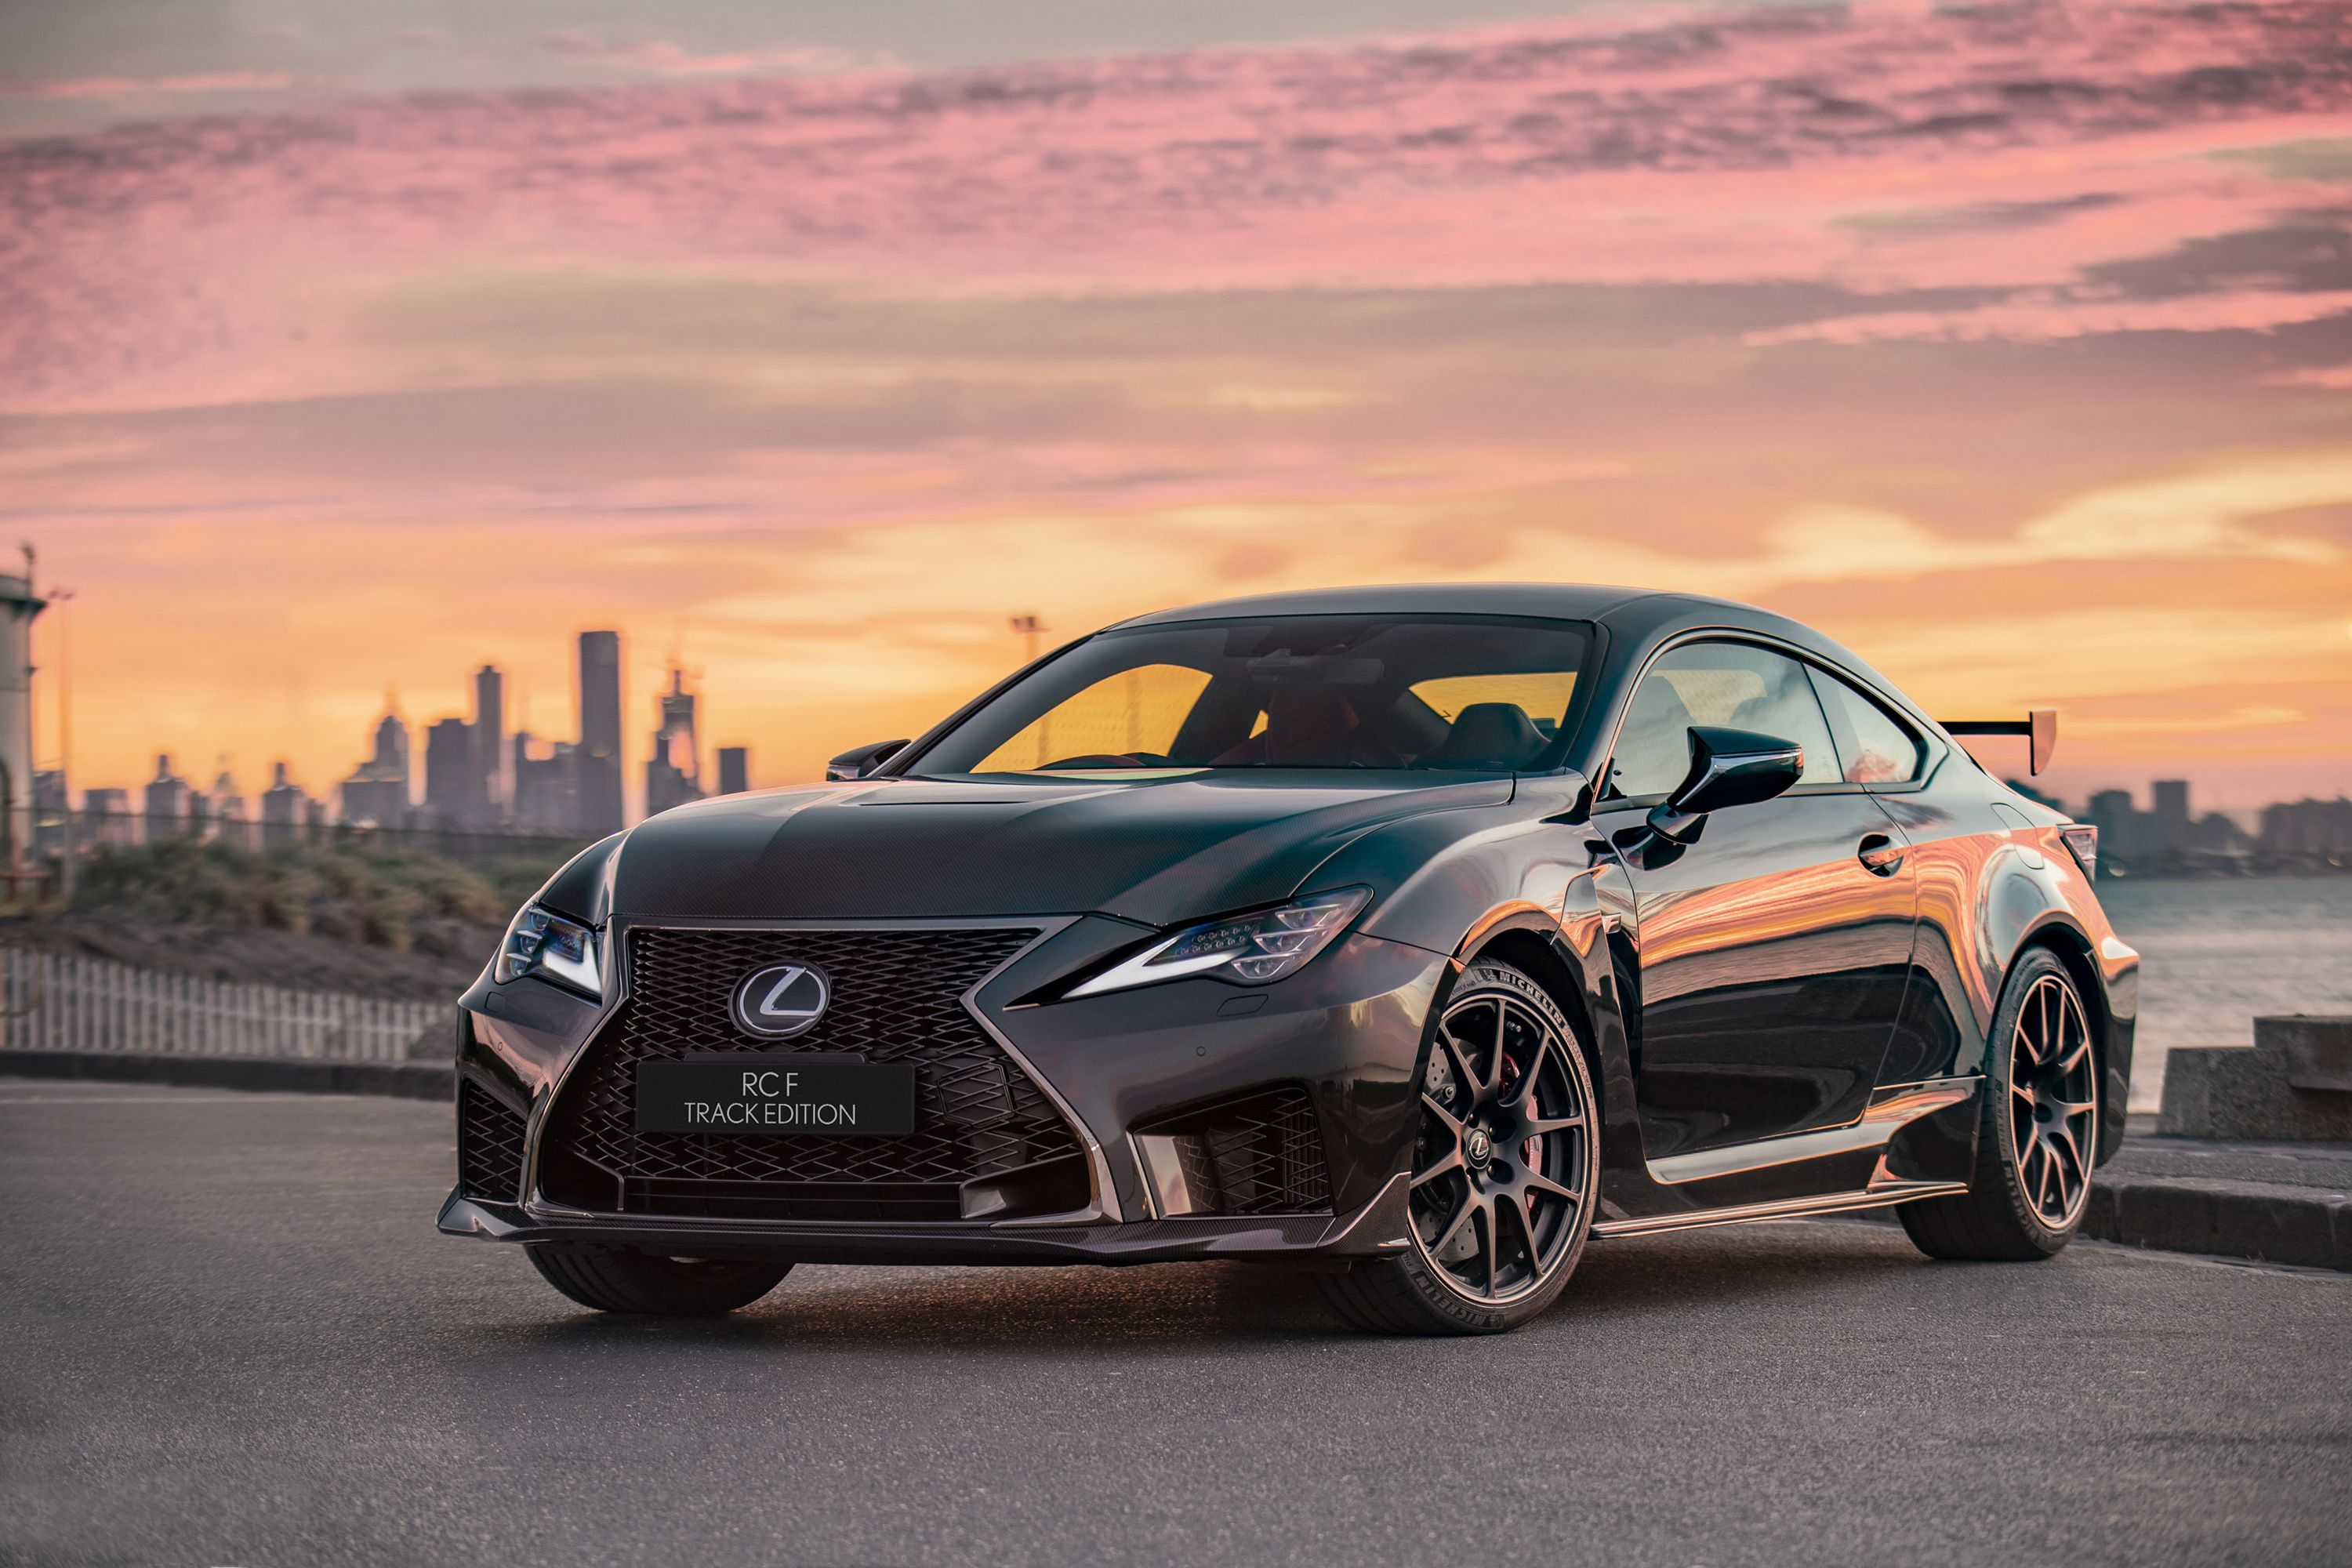 Lexus Rc F Wallpapers Top Free Lexus Rc F Backgrounds Wallpaperaccess